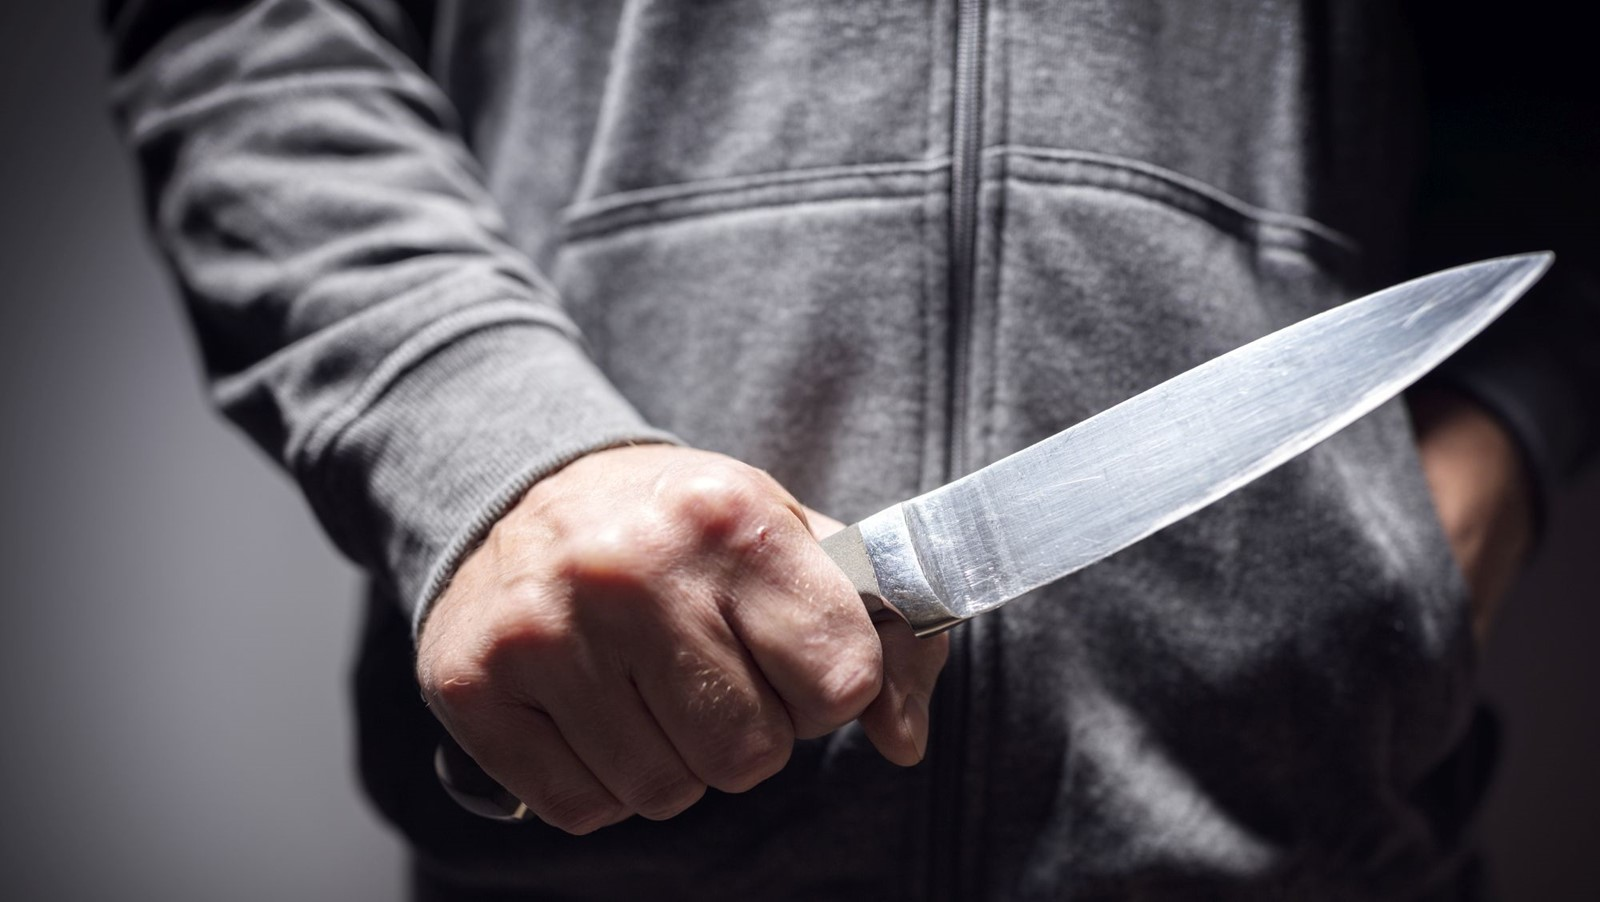 knife crime banner.jpg